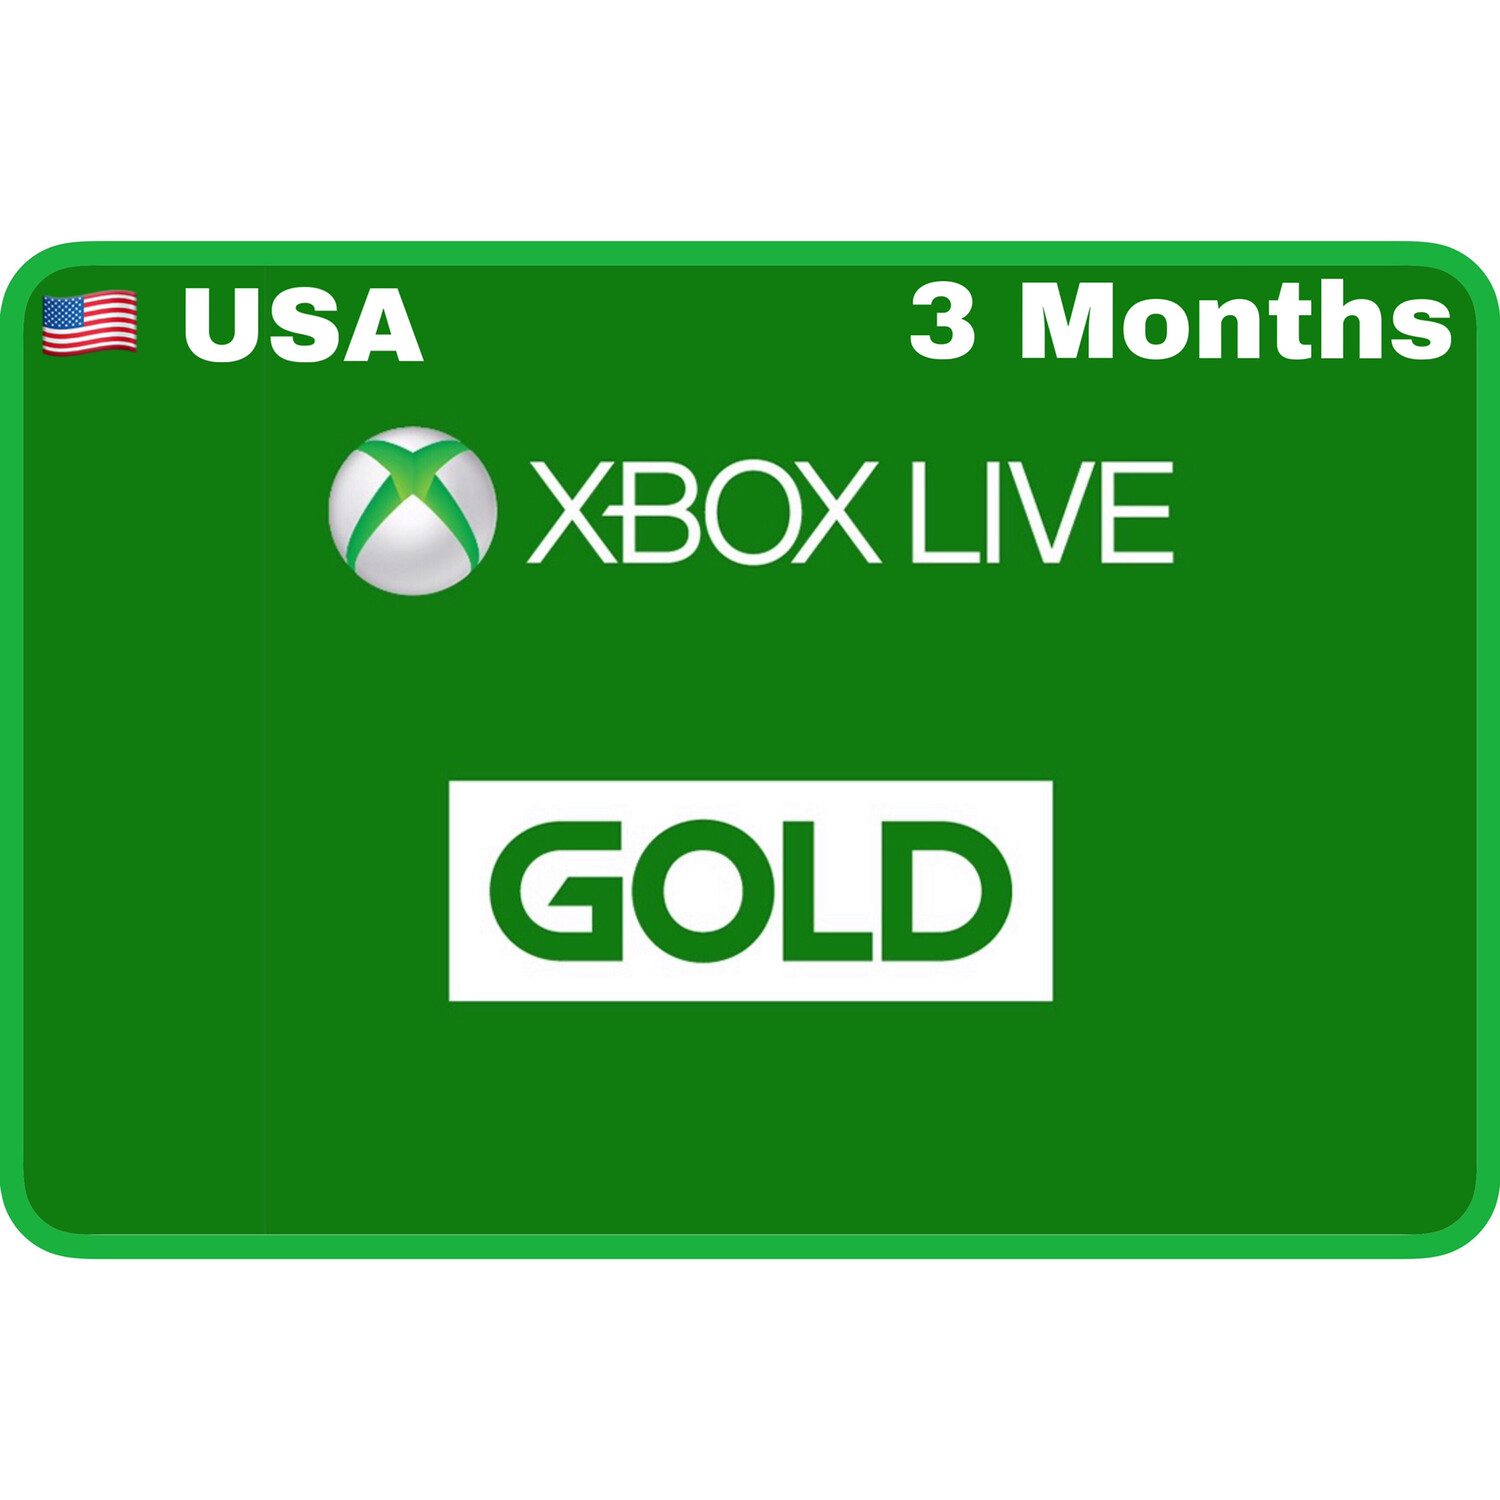 Xbox Live 3 Months Gold USA